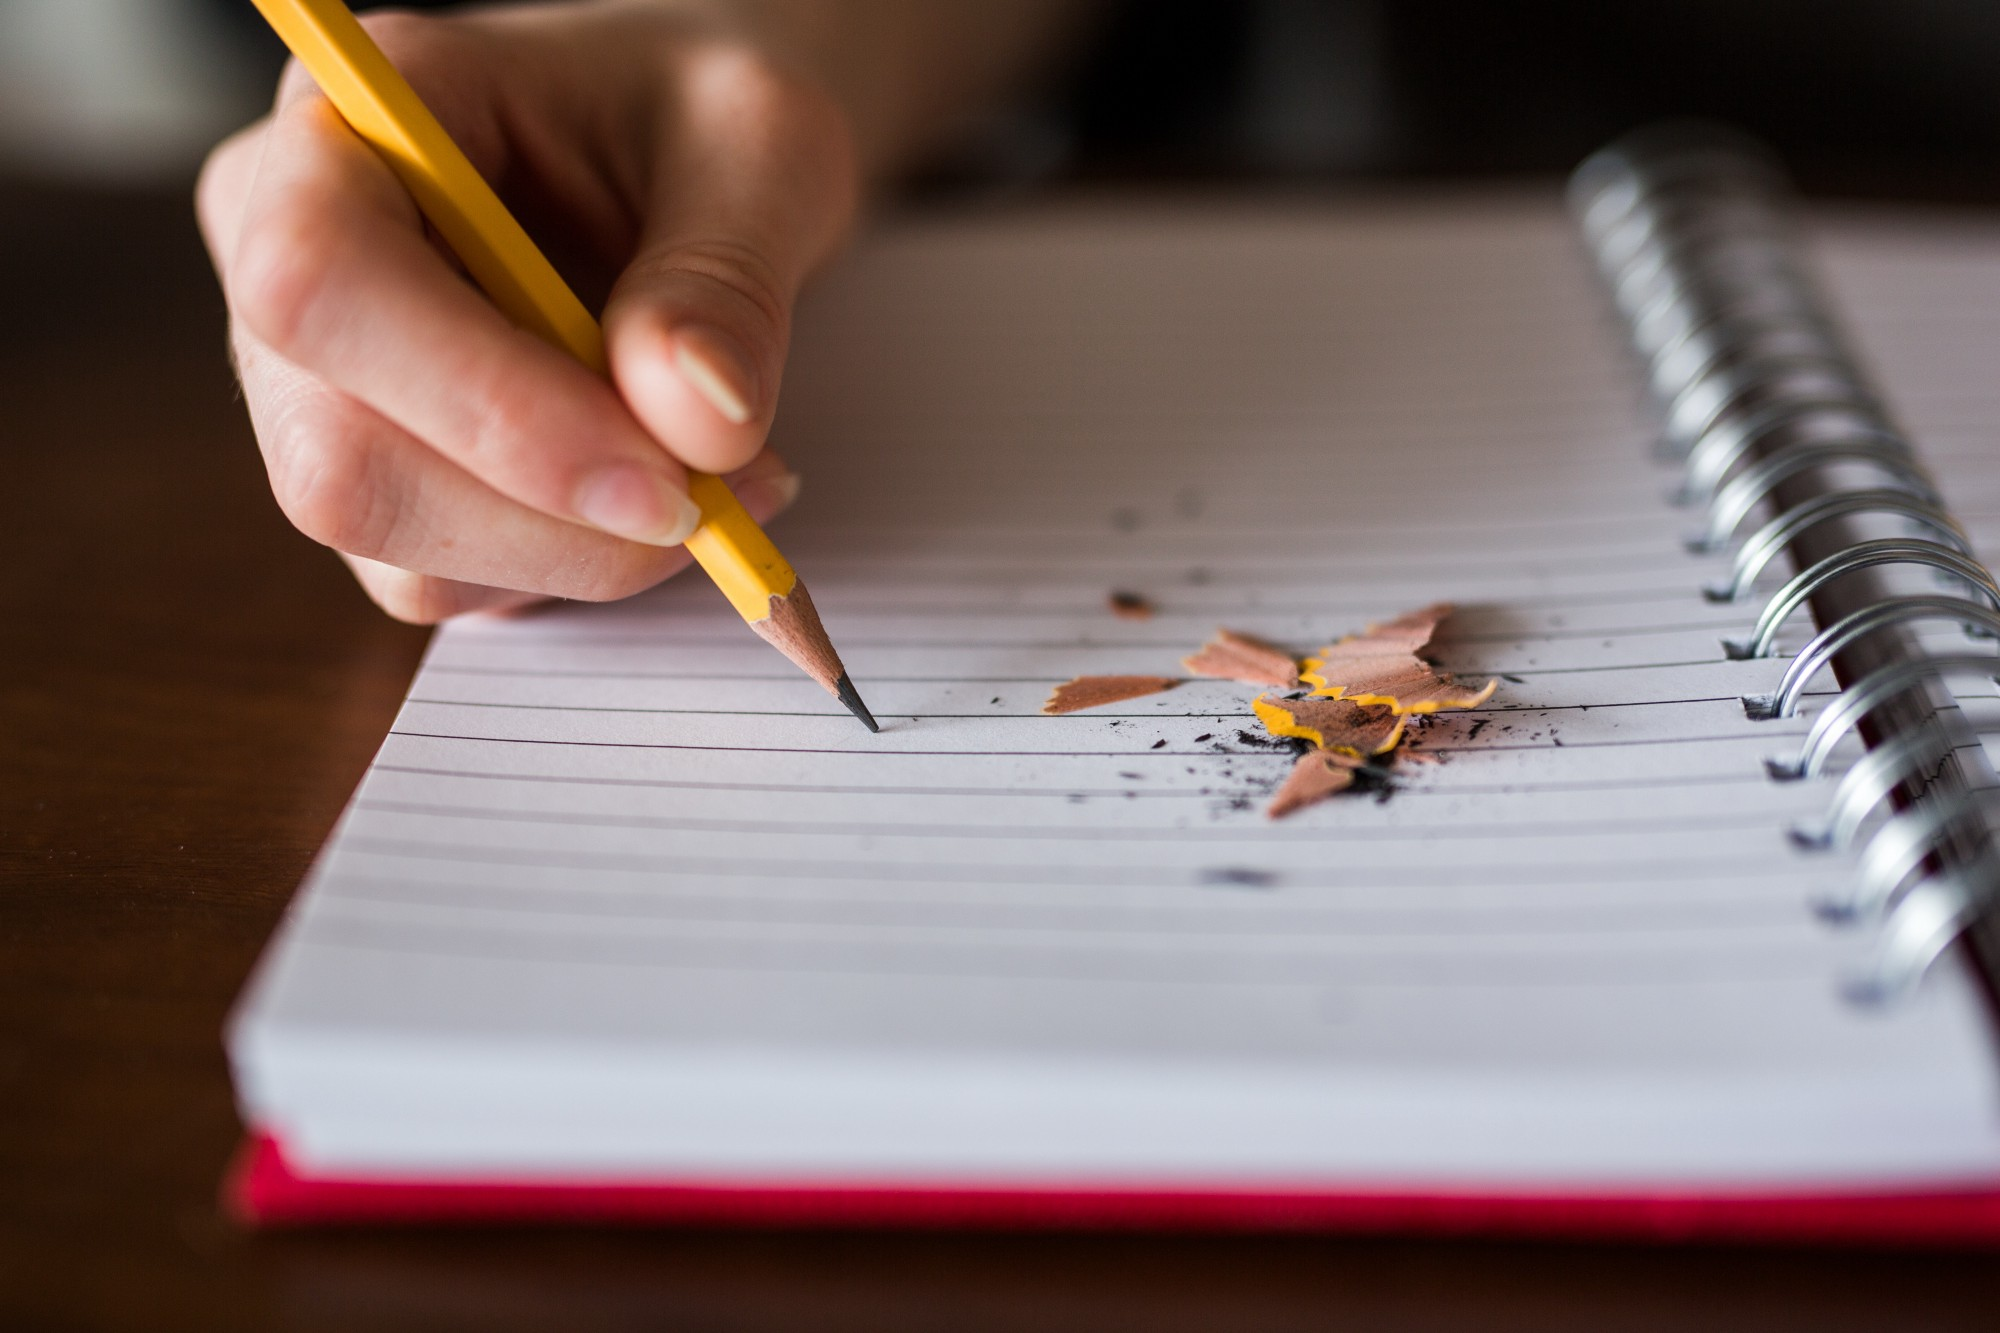 This image is of a student writing, a skill that they have the opportunity to perfect in this course.